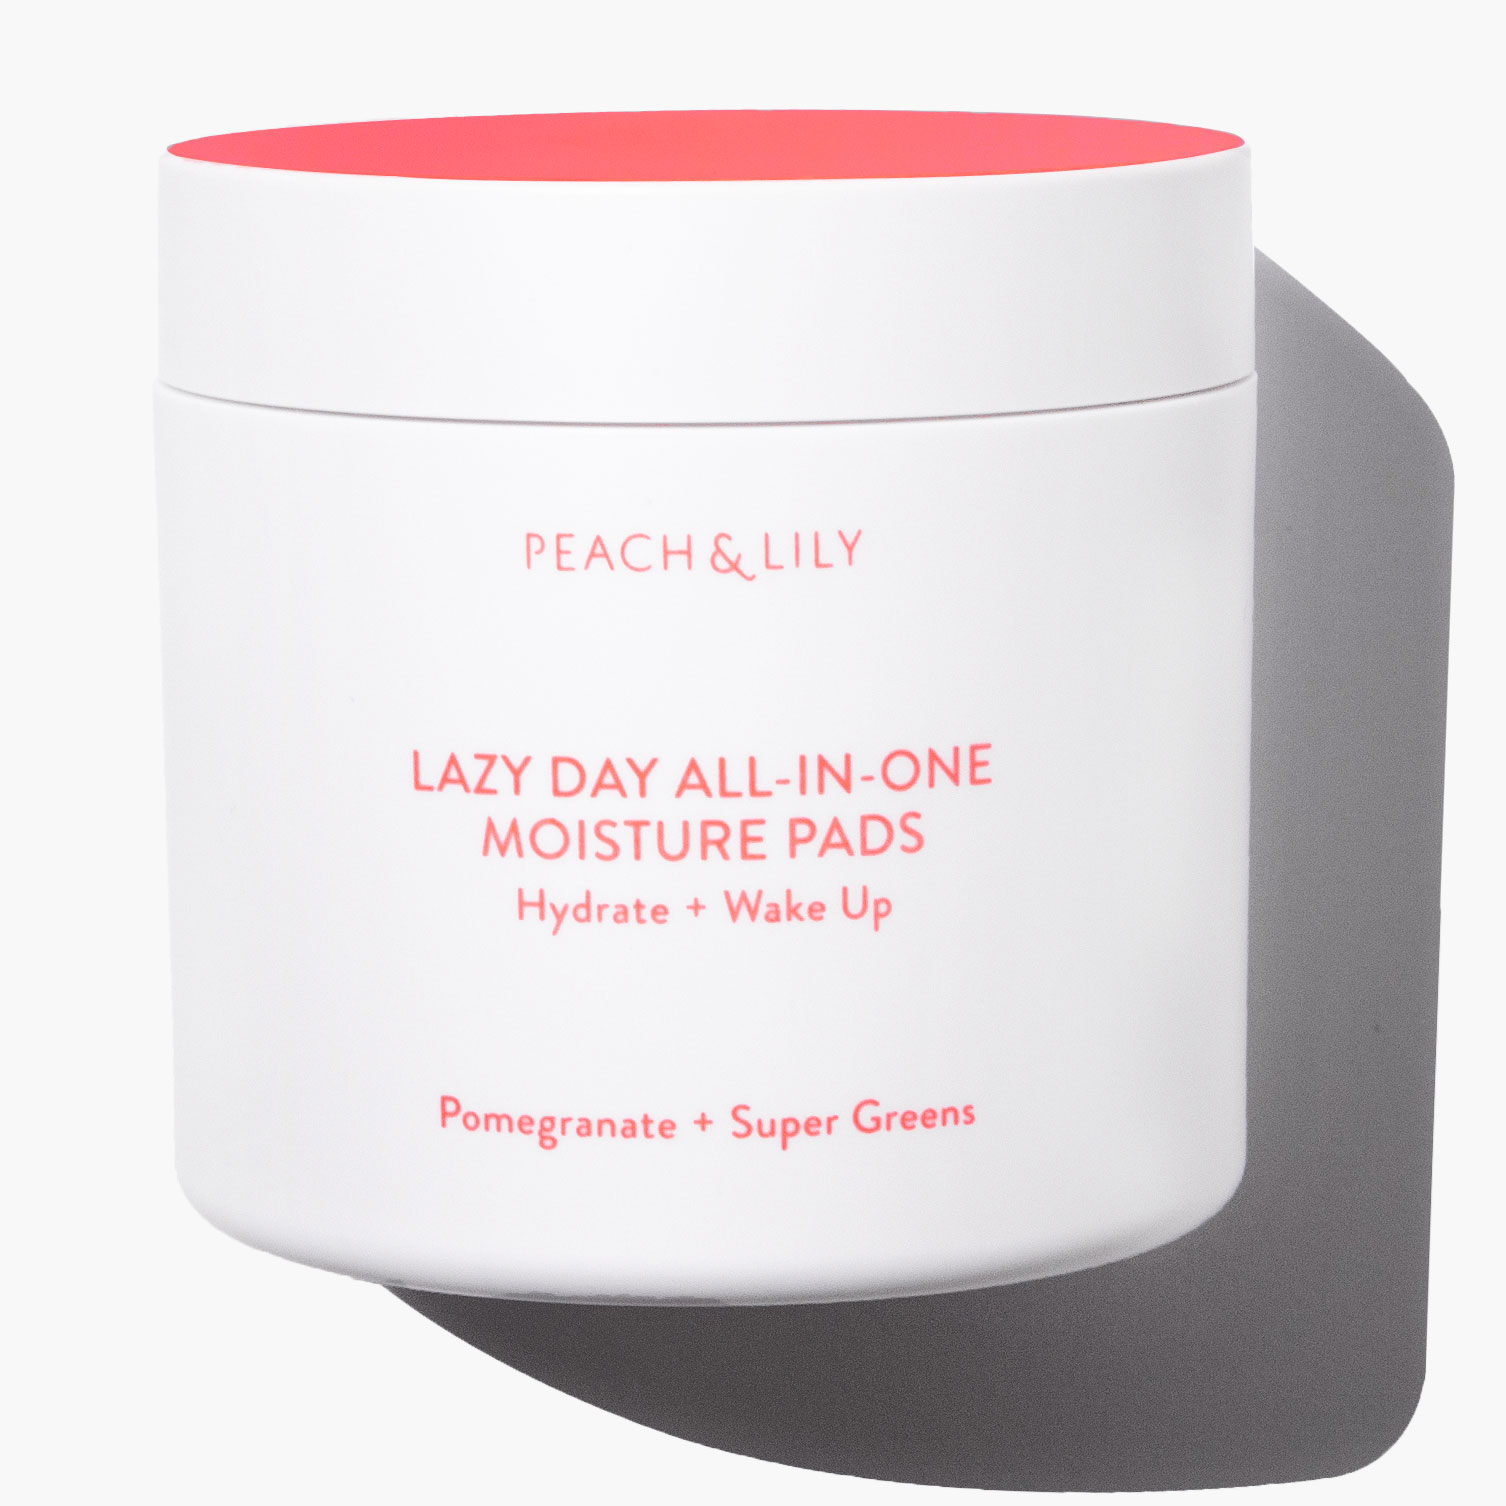 Best Lightweight Face Moisturizer for Summer: Peach & Lily Lazy Day All-in-One Moisture Pads